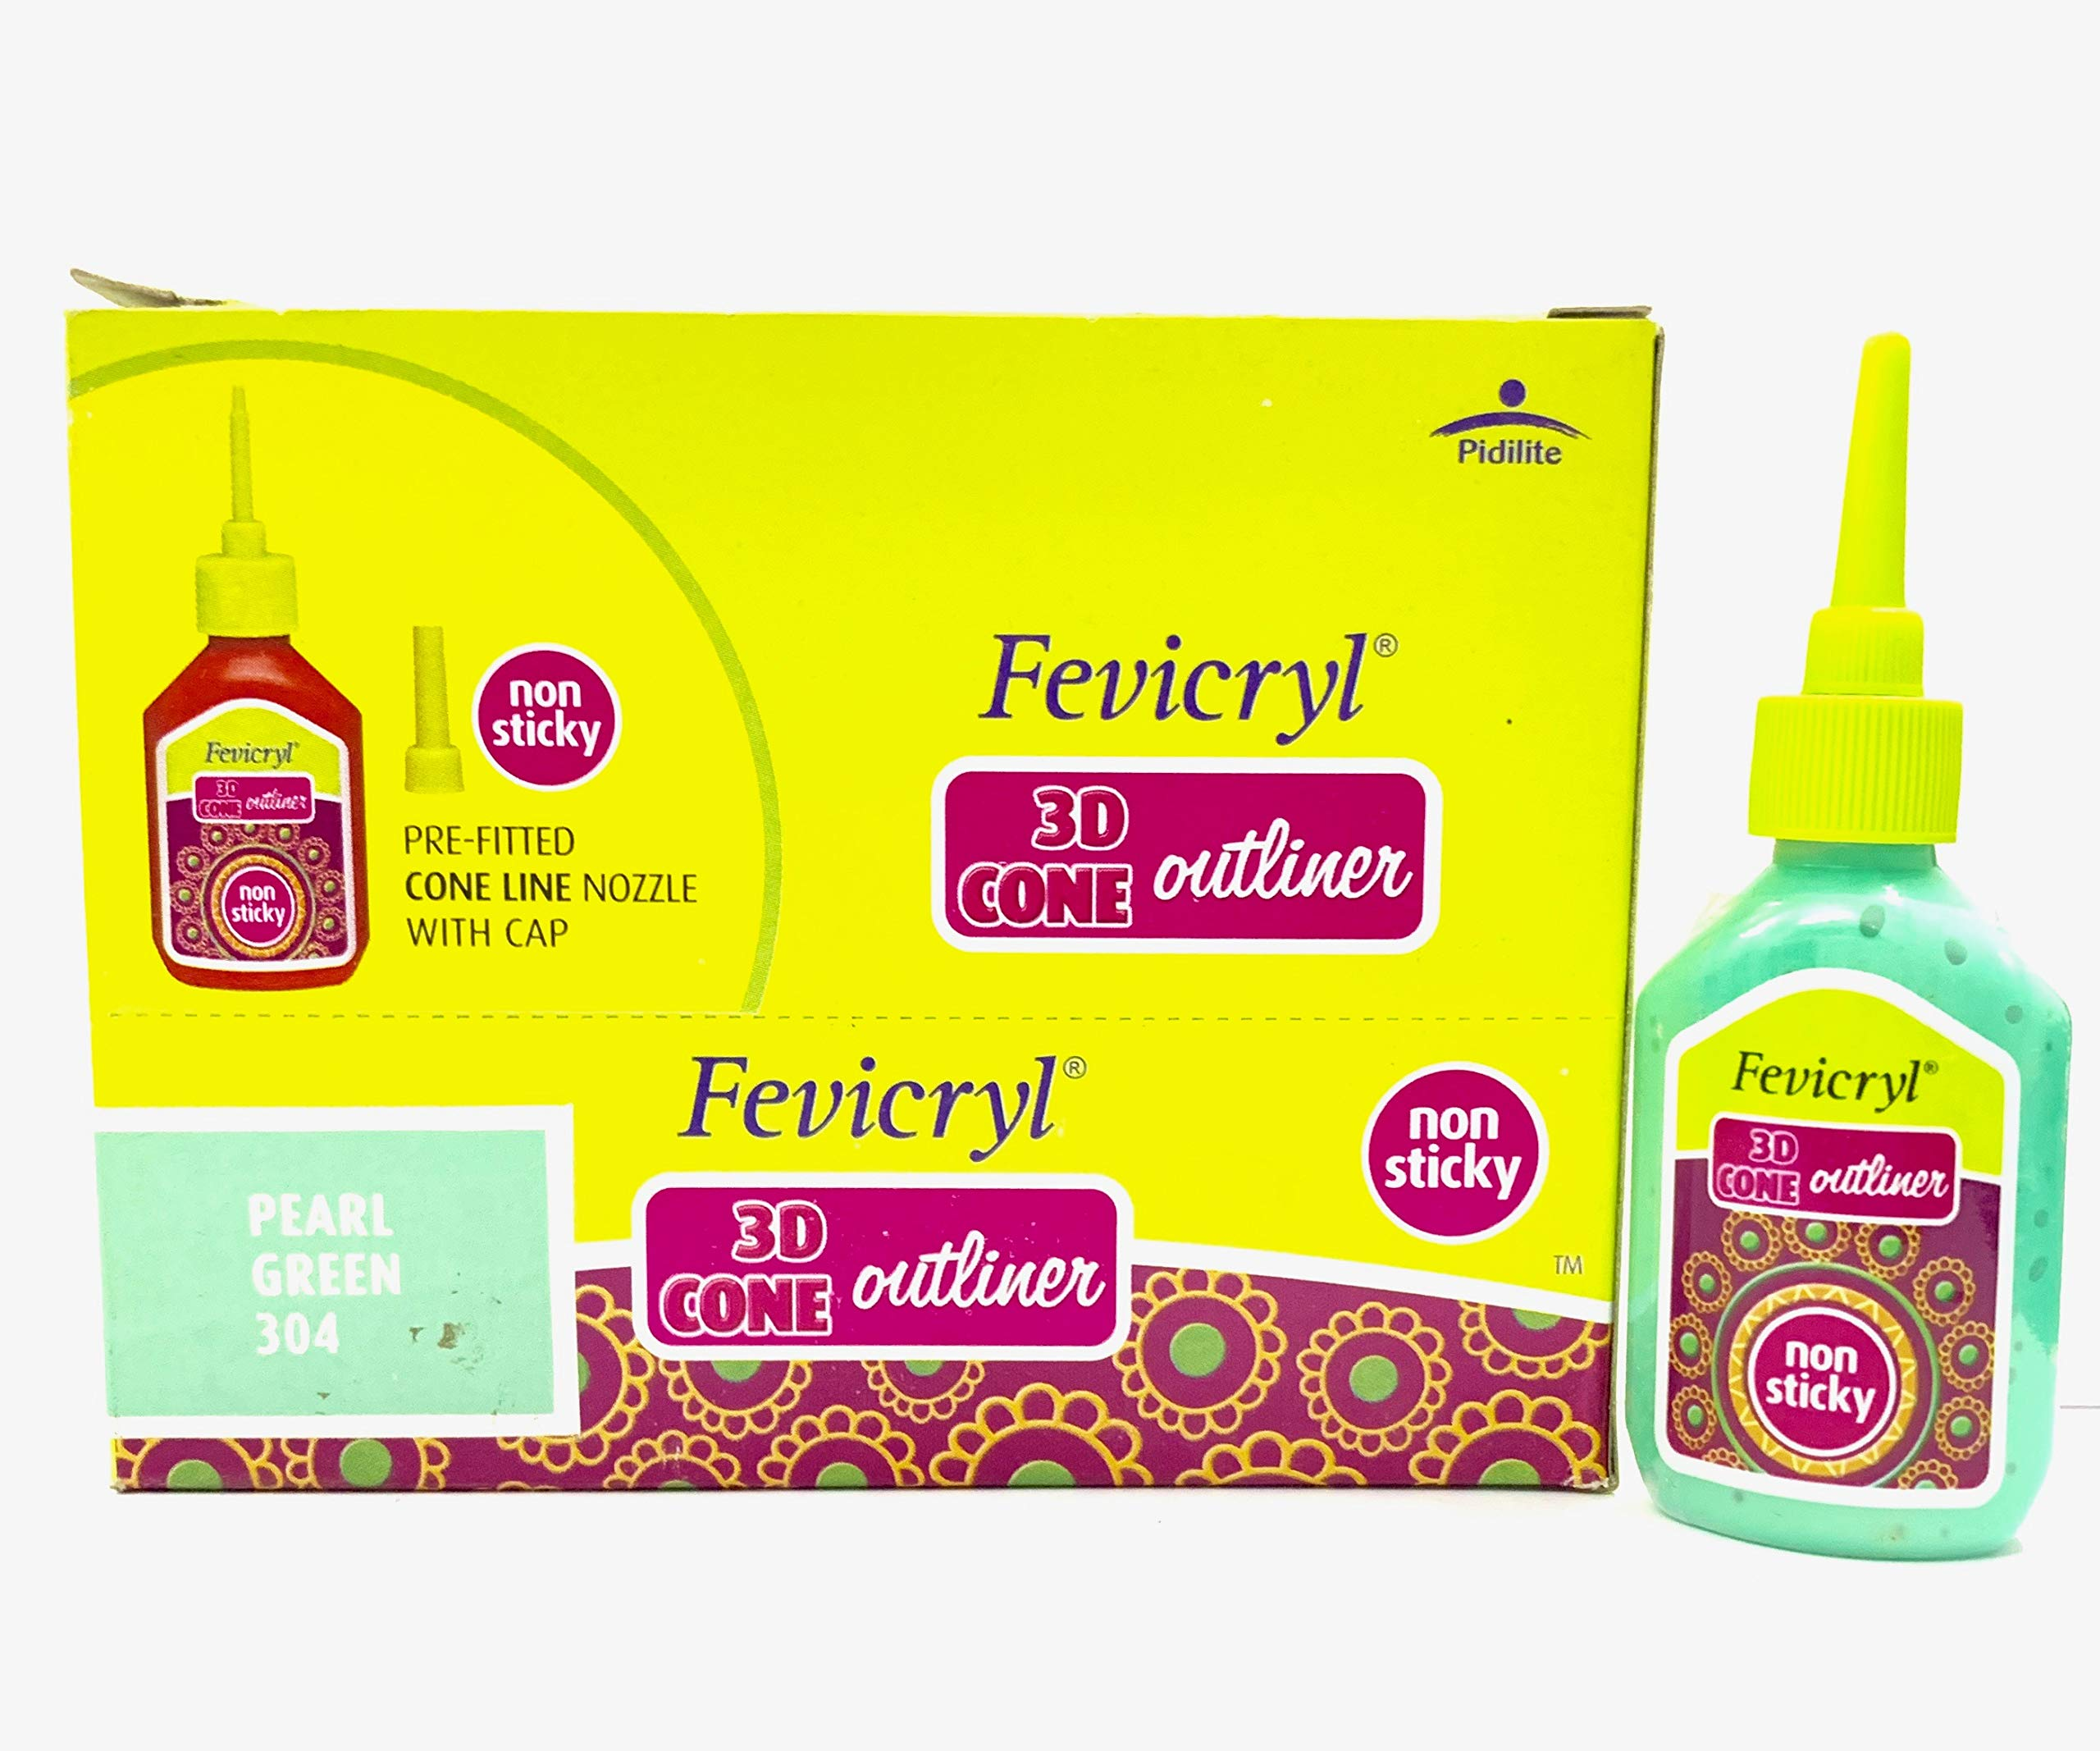 New Fevicryl Non Sticky 3D Cone Outliner Non-Toxic with Pre-Fitted Cone Line Nozzle with Cap (304) - 20ml Bottle -10 Bottle Pack - Colour - Pearl Green- with Free 3D Keyring by Fevicryl